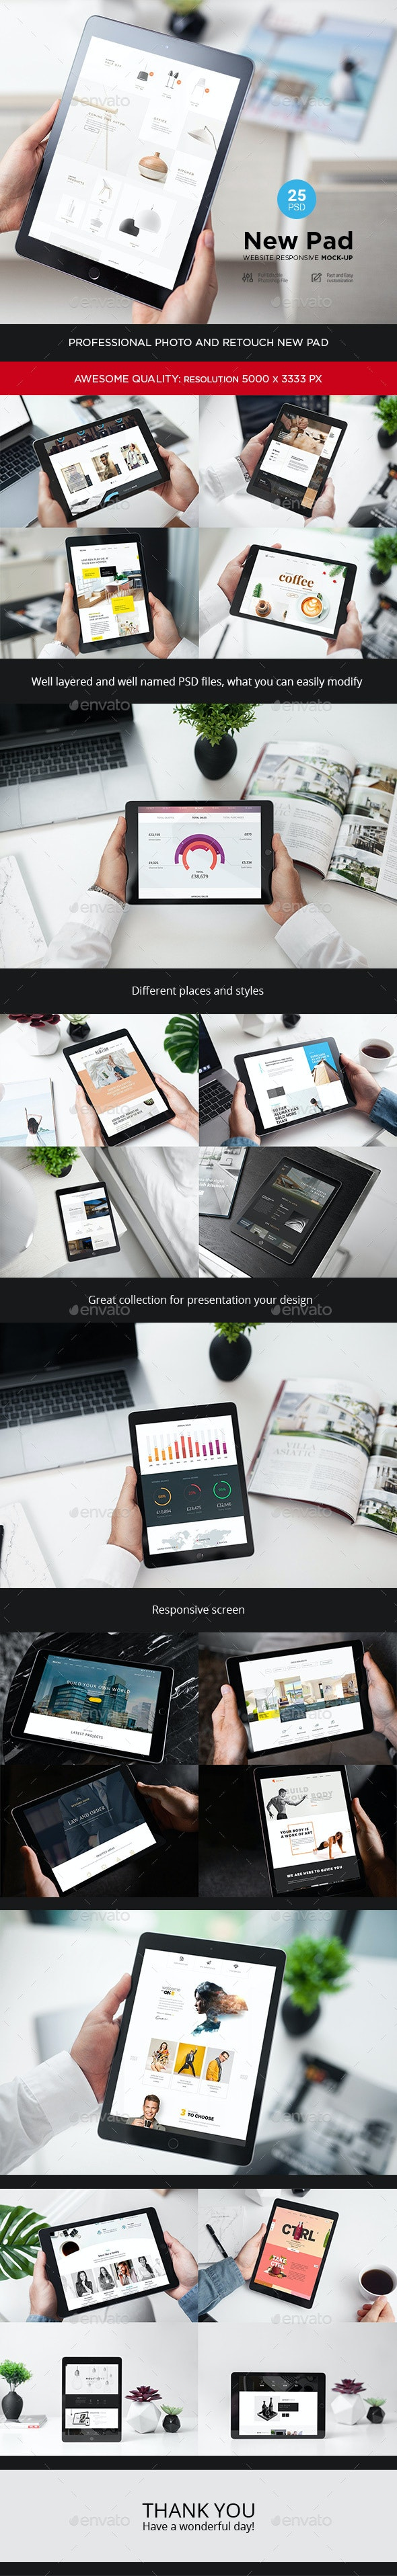 New Pad Responsive Mock-Up - Displays Product Mock-Ups